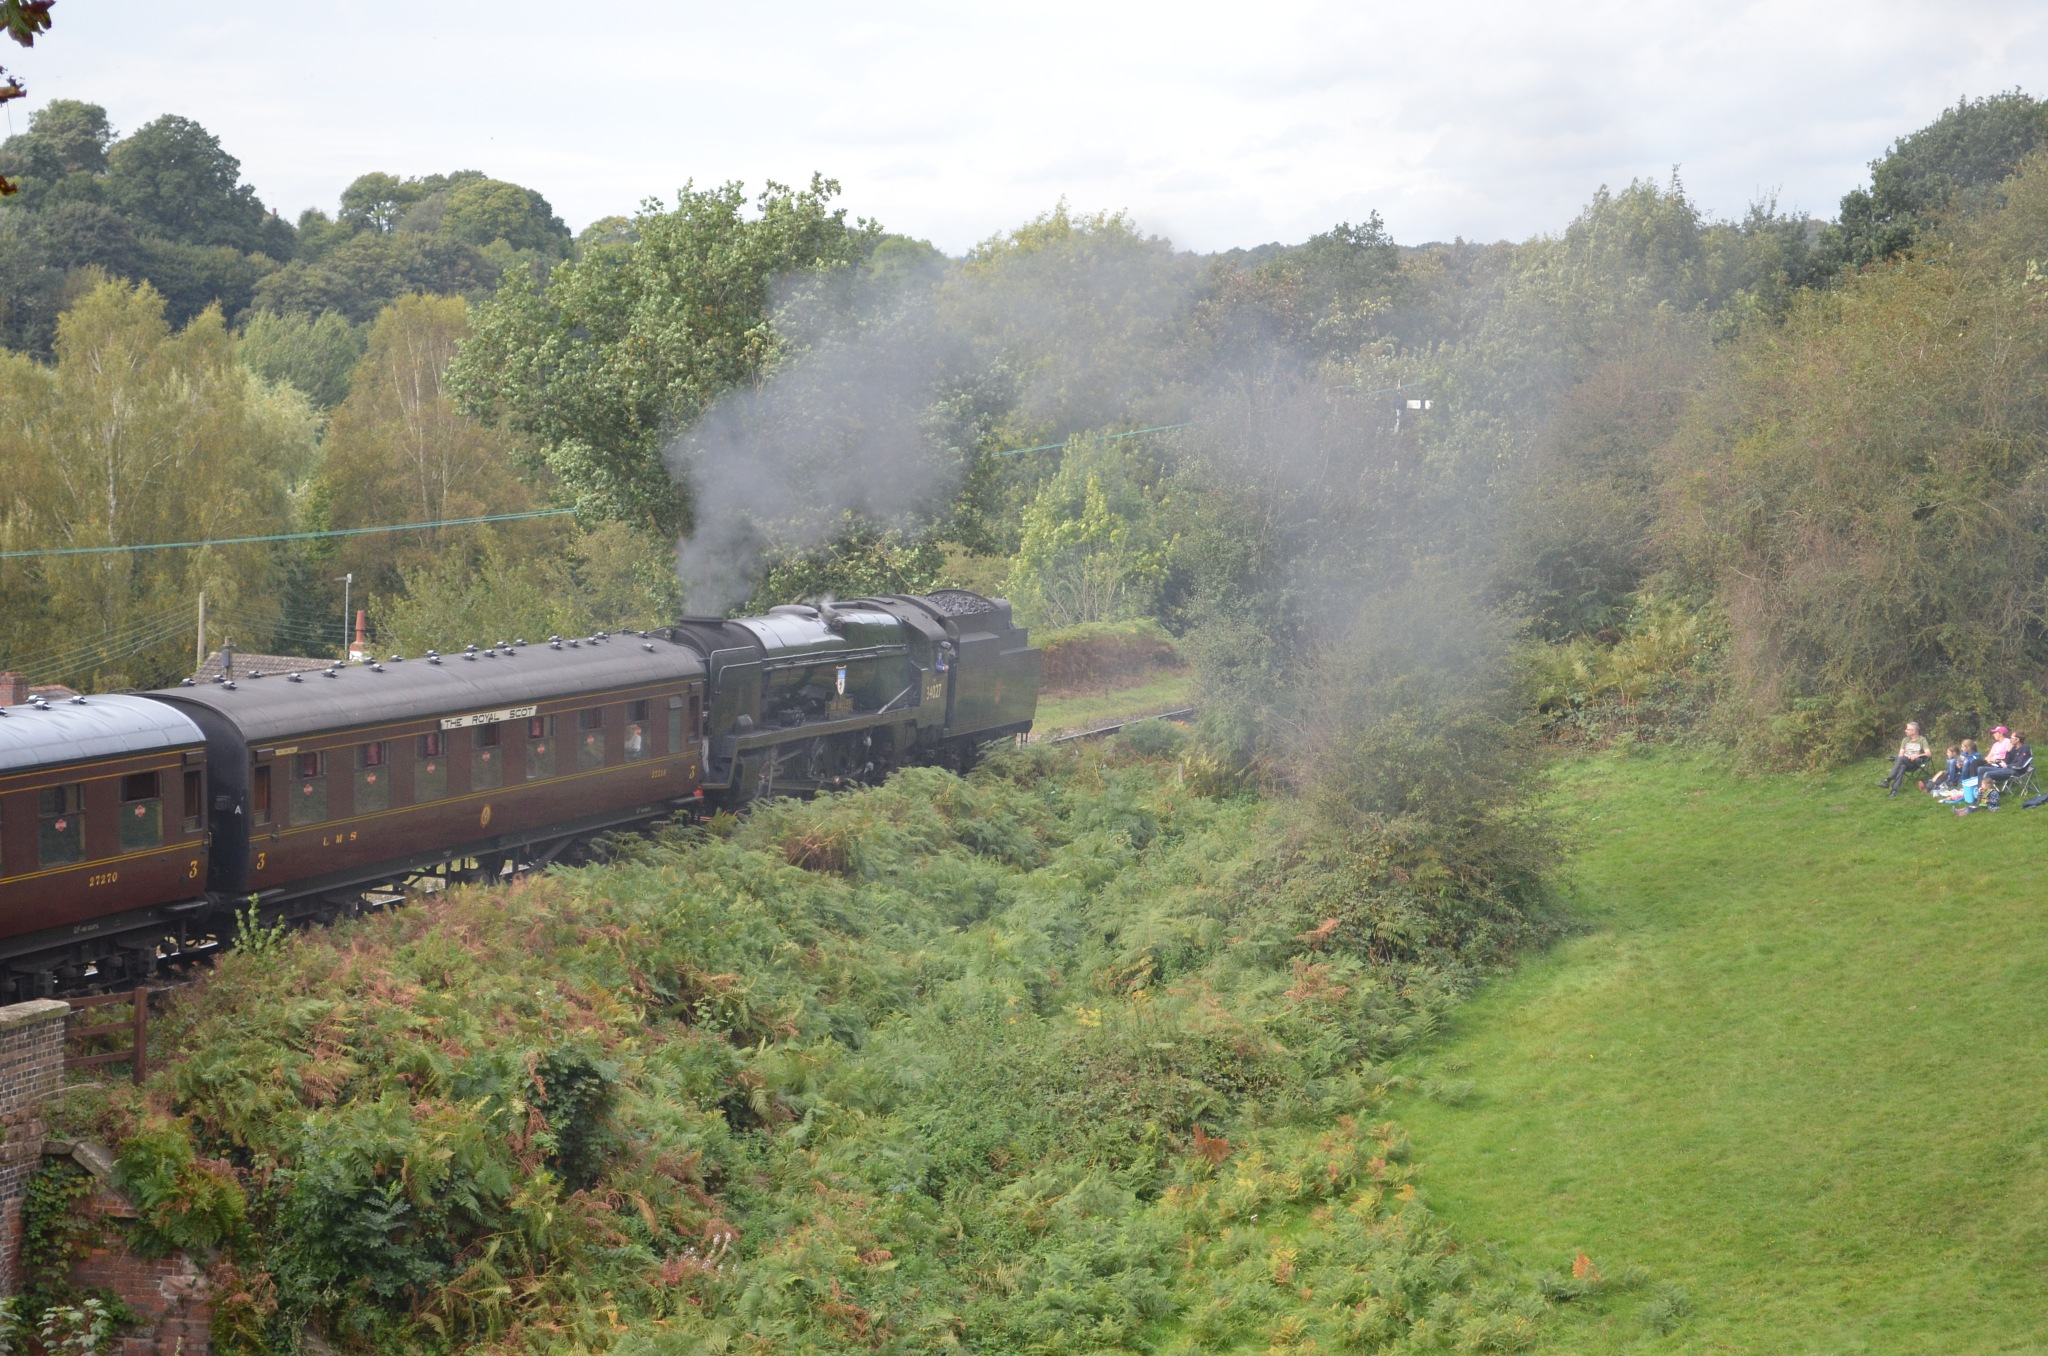 TAW VALLEY DEPARTING BEWDLEY ON WAY TO BRIDGNORTH by adrian.williams.58323